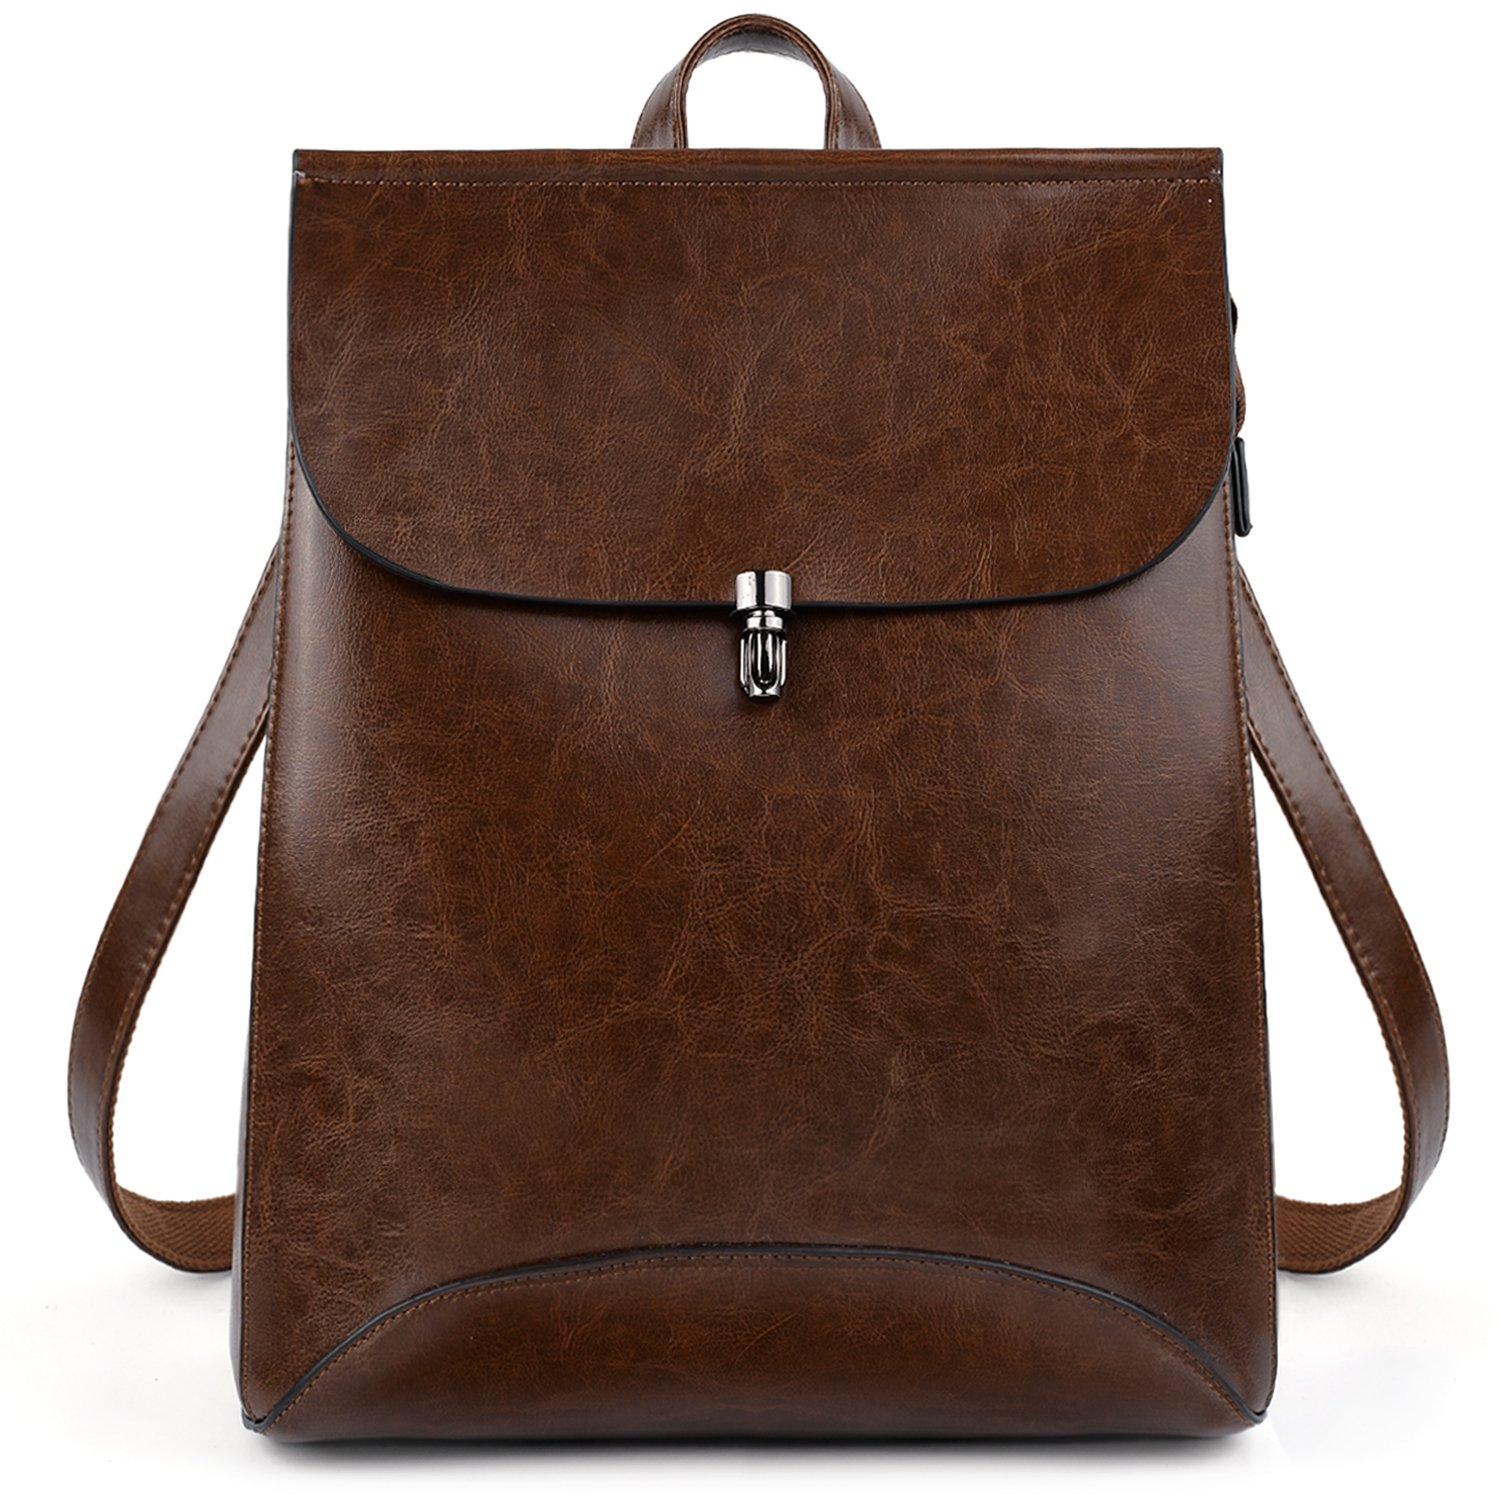 bfcb4d0d87f5 Amazon.com  UTO Women s Pu Leather Backpack Purse Ladies Casual Shoulder Bag  School Bag for Girls Large Brown  Clothing